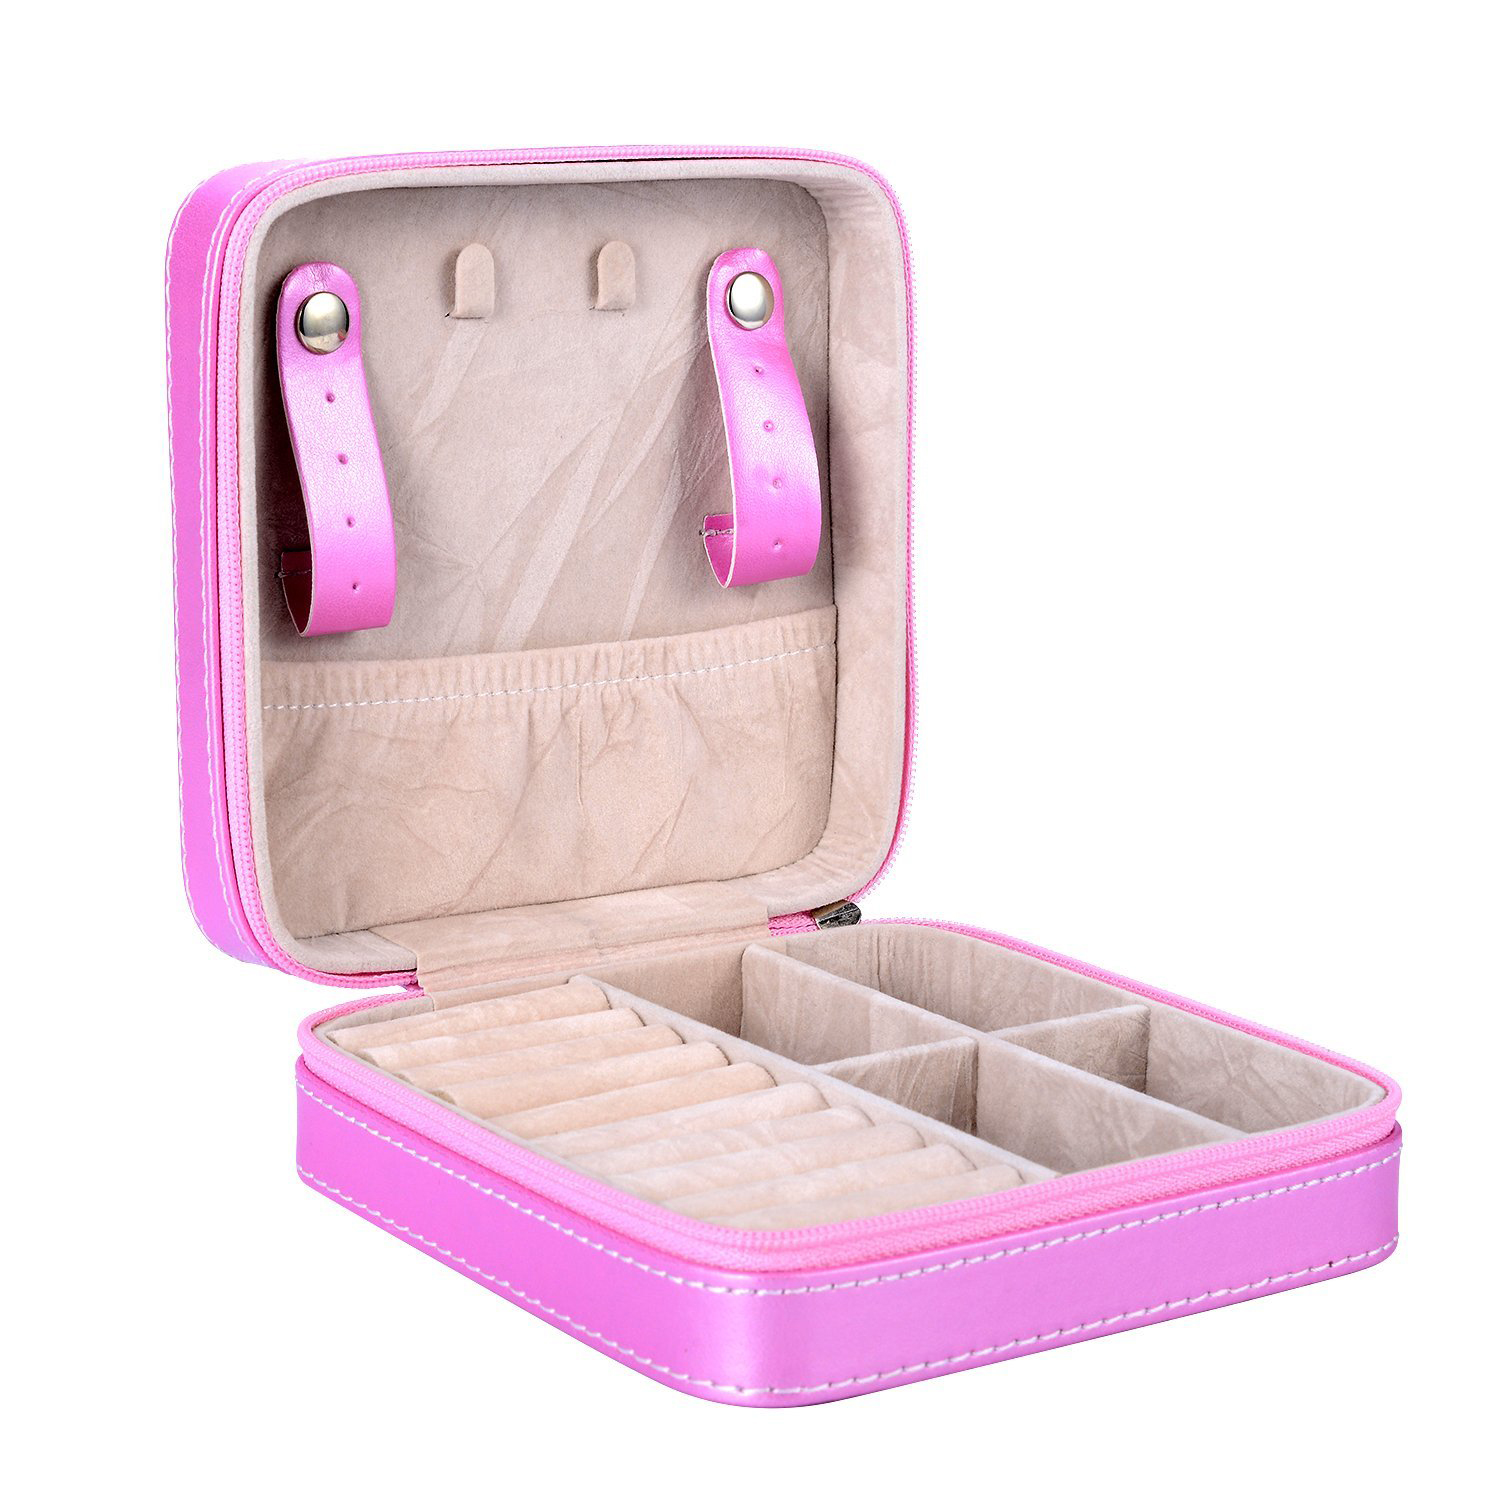 Cute Pink Zippered Small Jewelry Travel Box